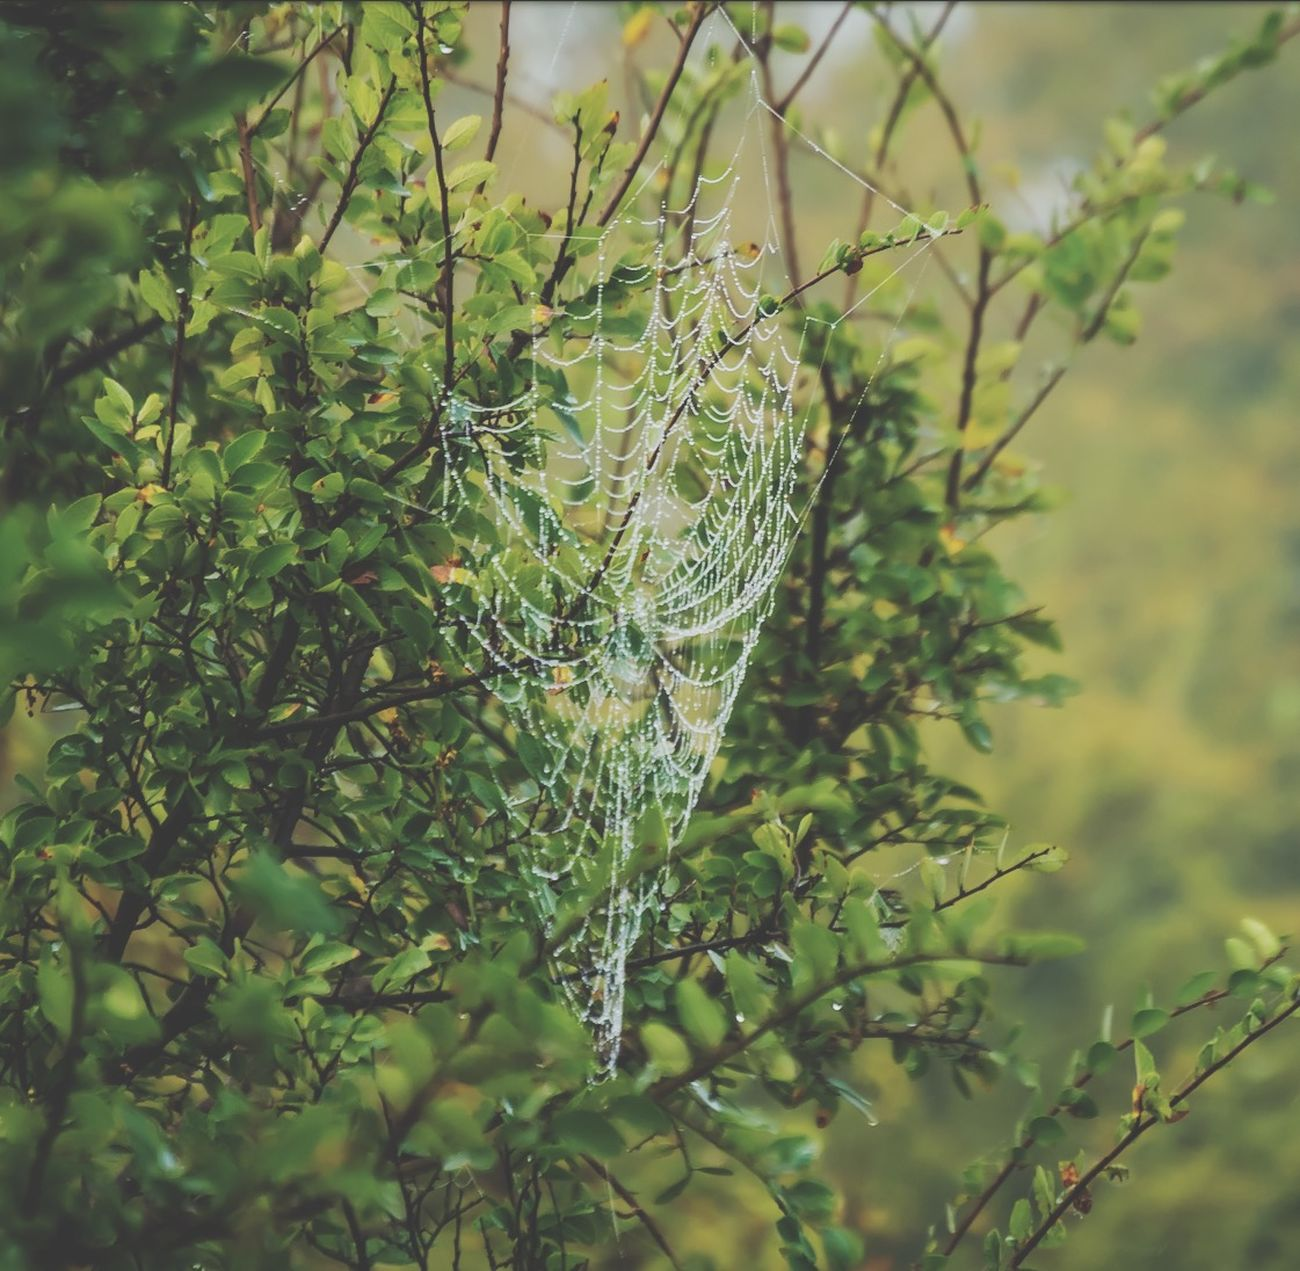 Through the very foggy morning another beauty was brought into clear sight. Incredible build! Spidersweb Nature Spider DSLR Photography First Eyeem Photo